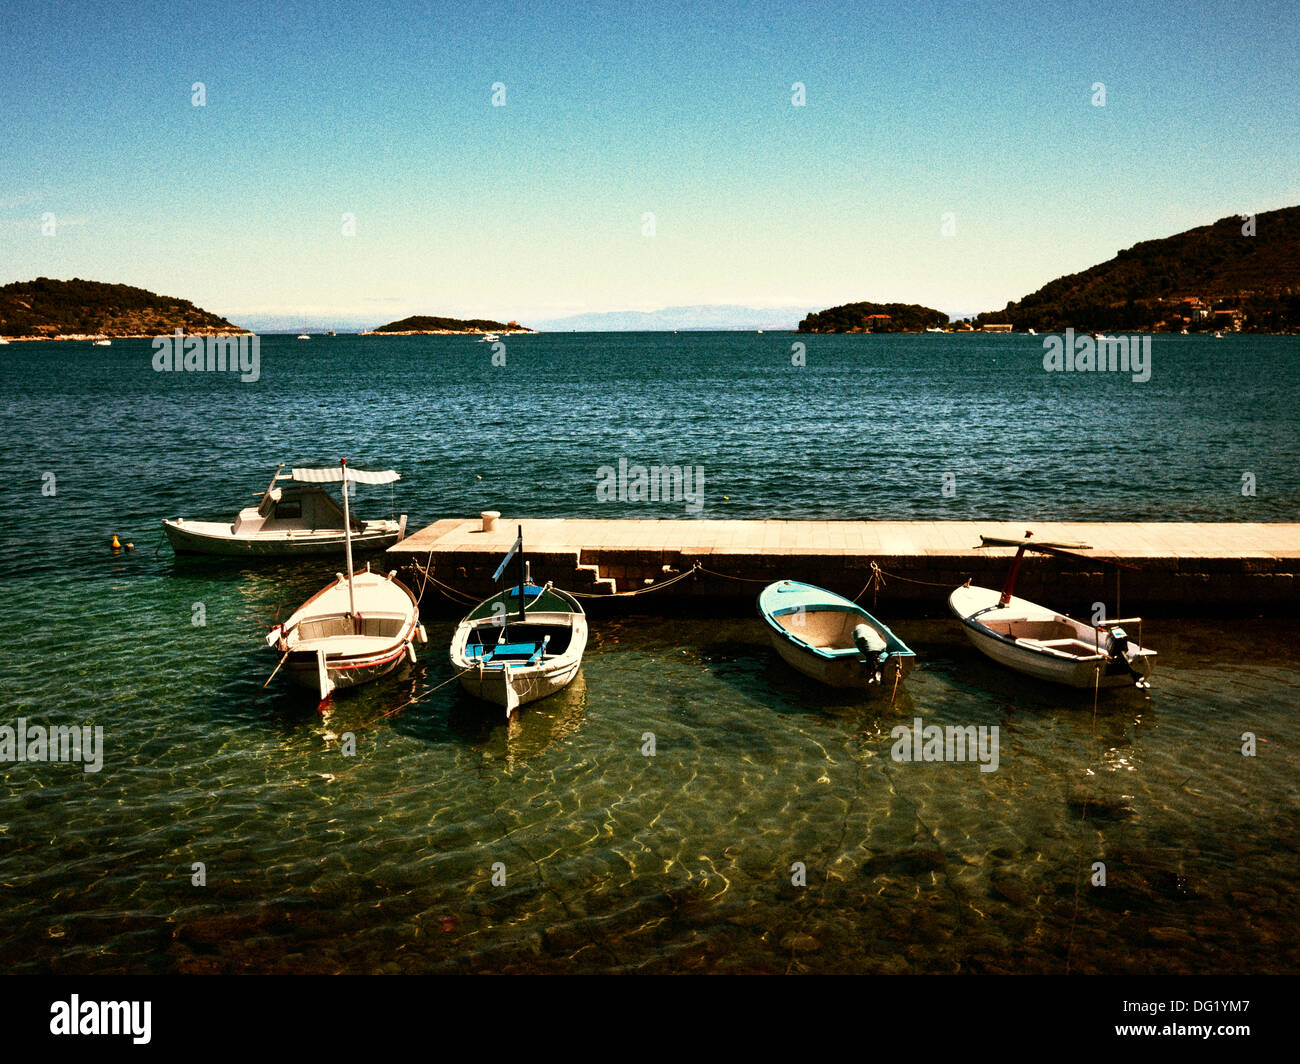 Small Boats Moored to Dock - Stock Image